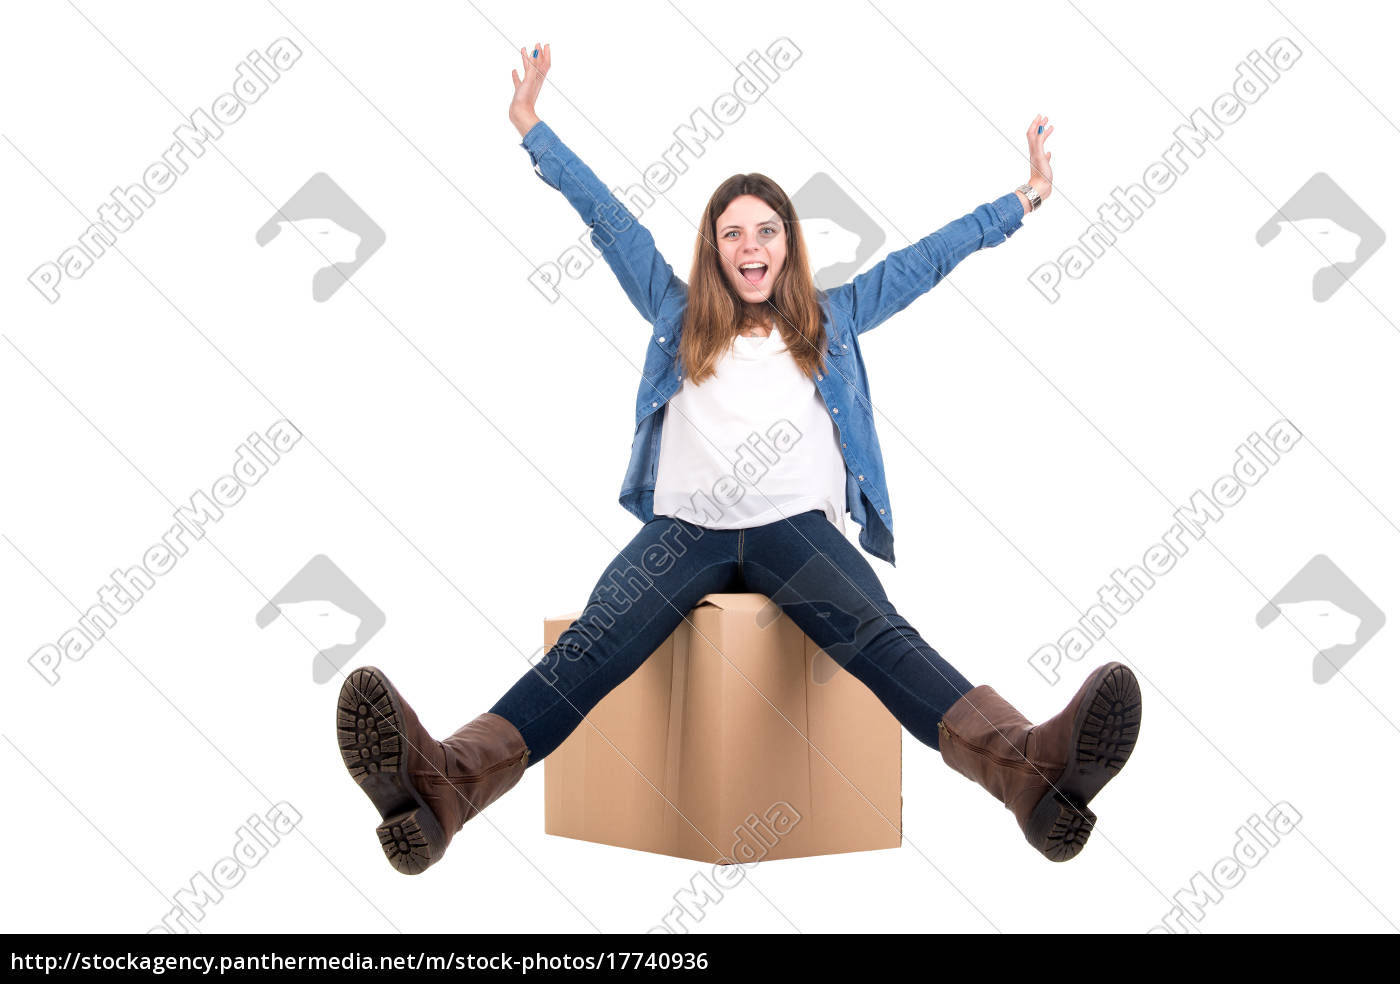 girl, with, box - 17740936